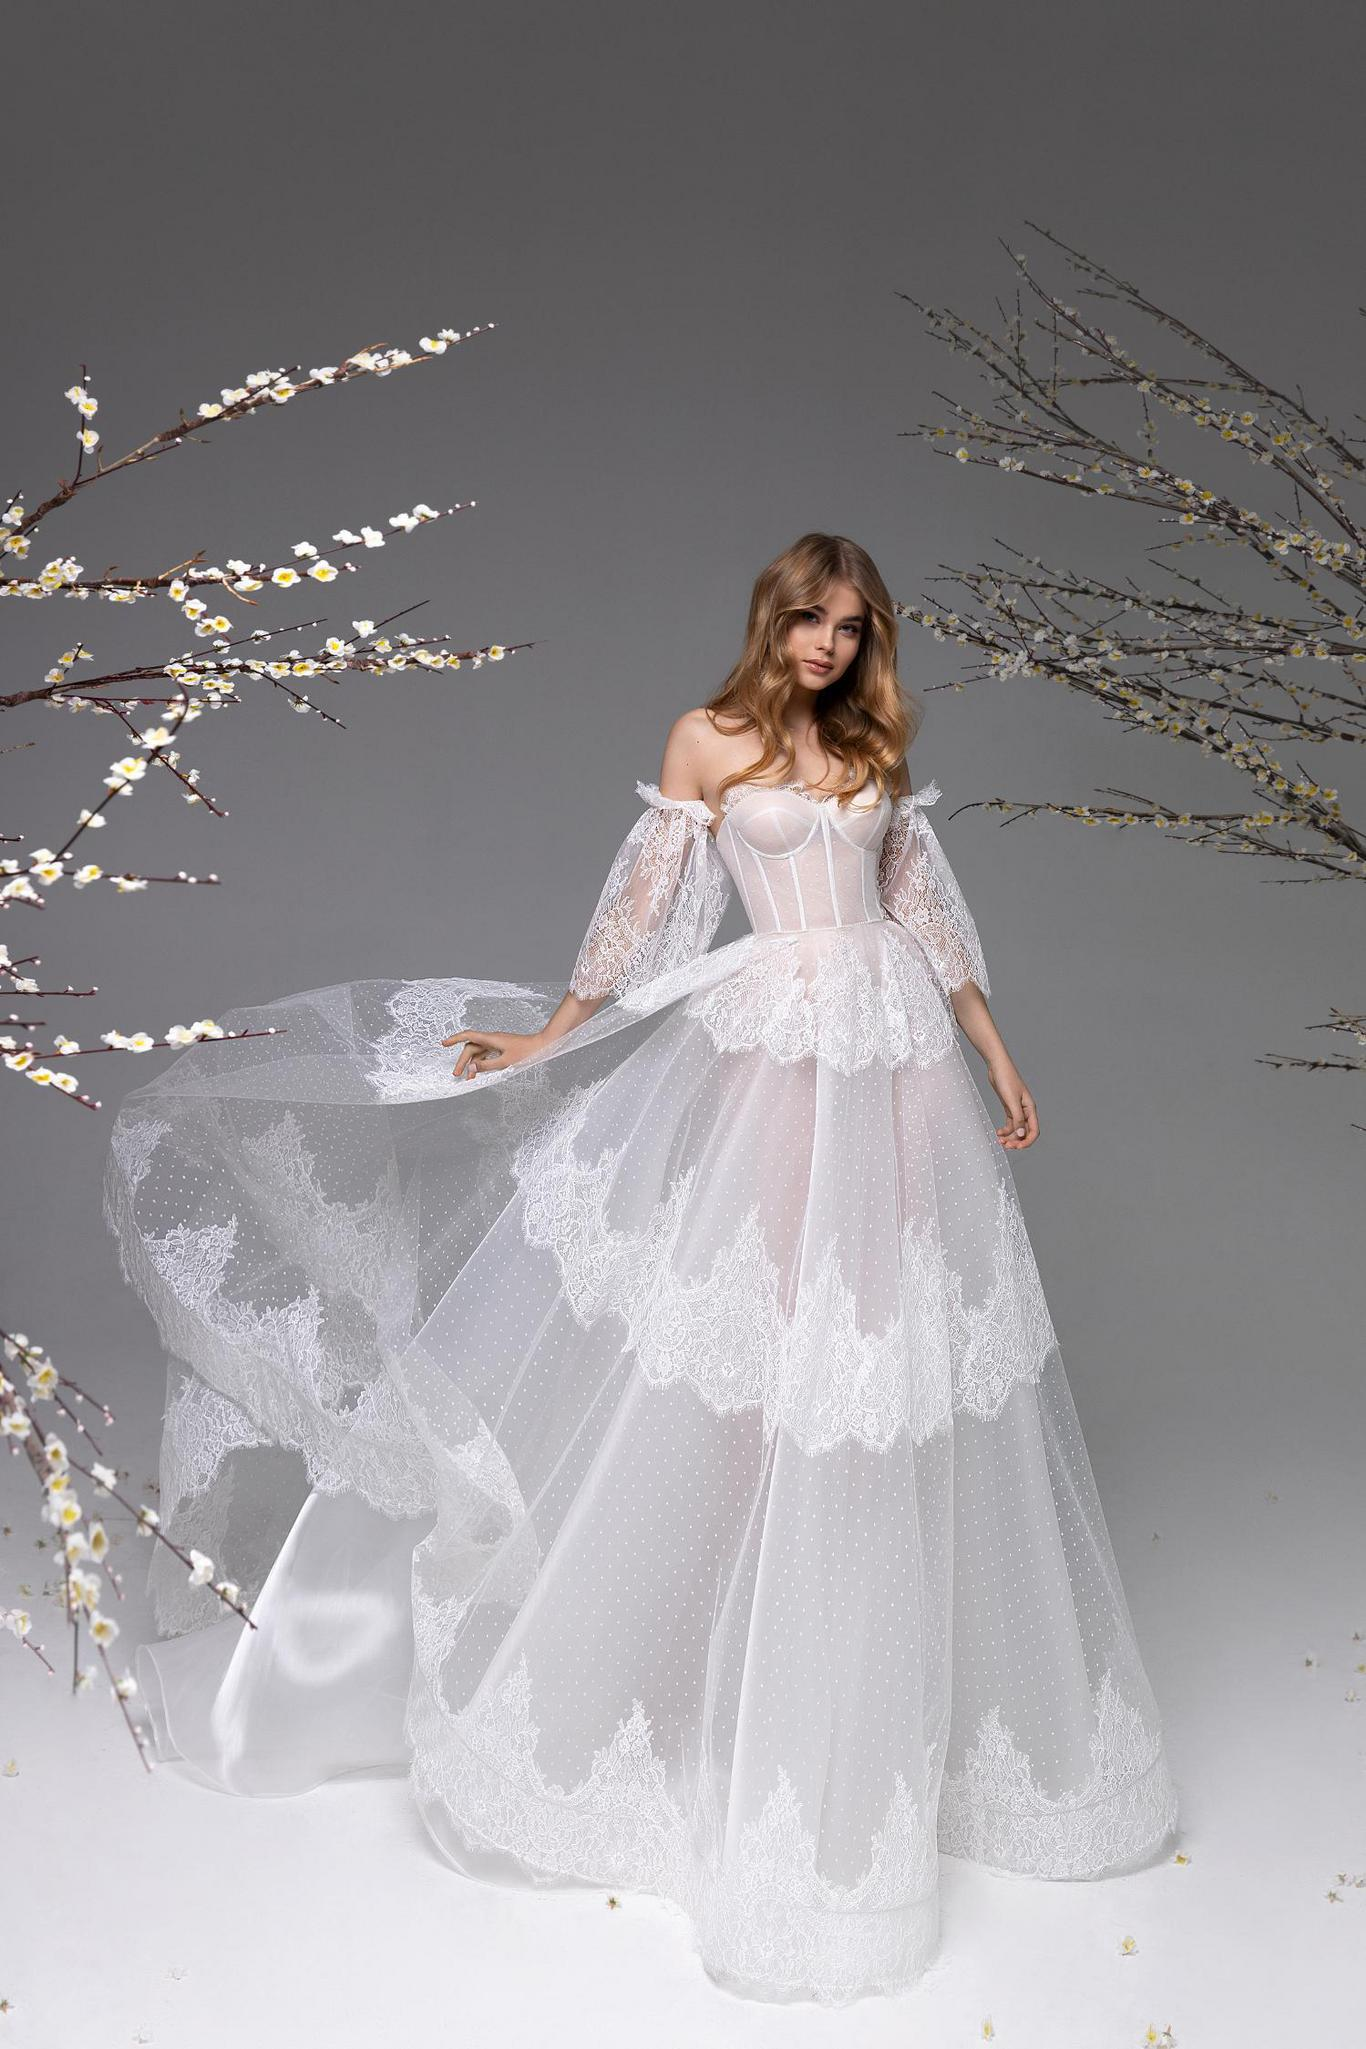 BLOOMING SPRING 2021 - LOVE by Ricca Sposa